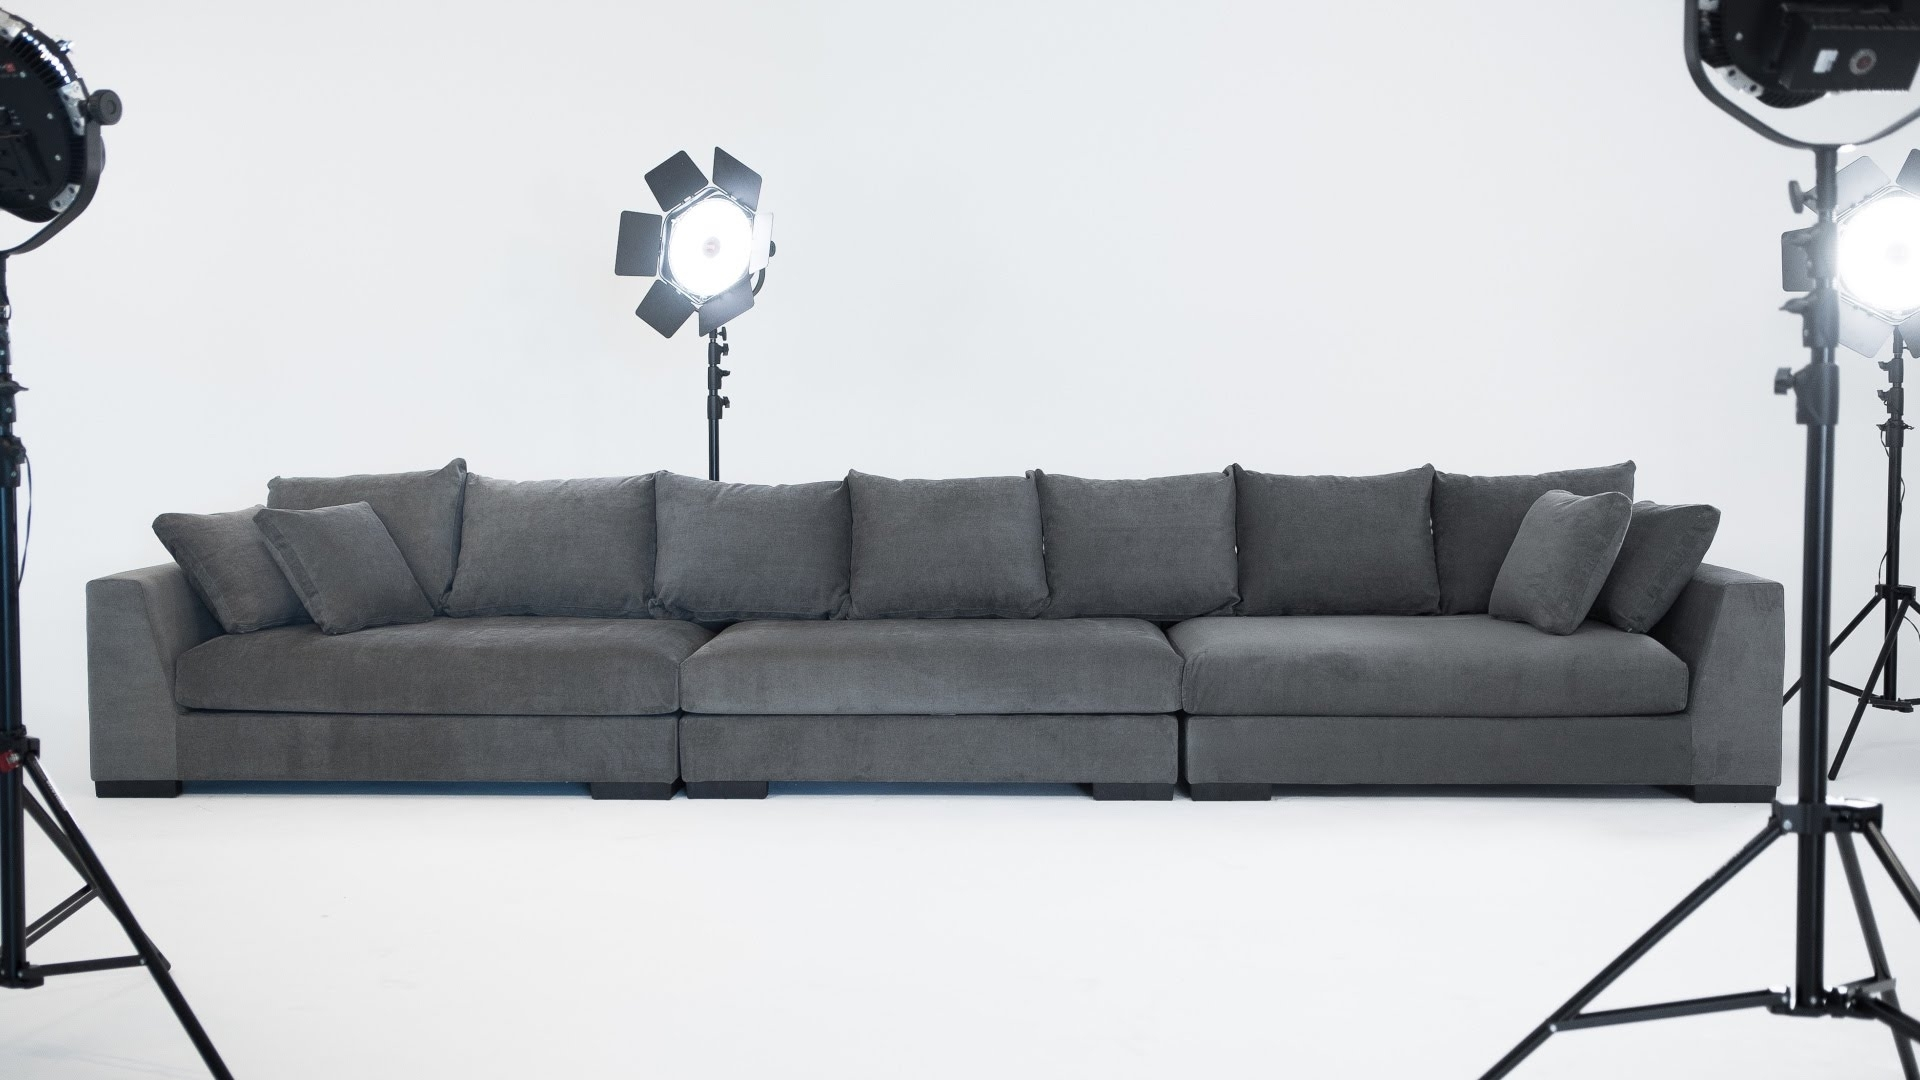 Structube Sectional Sofas Within Well Known The Cooper Sectional Sofa – Structube – Youtube (View 3 of 20)